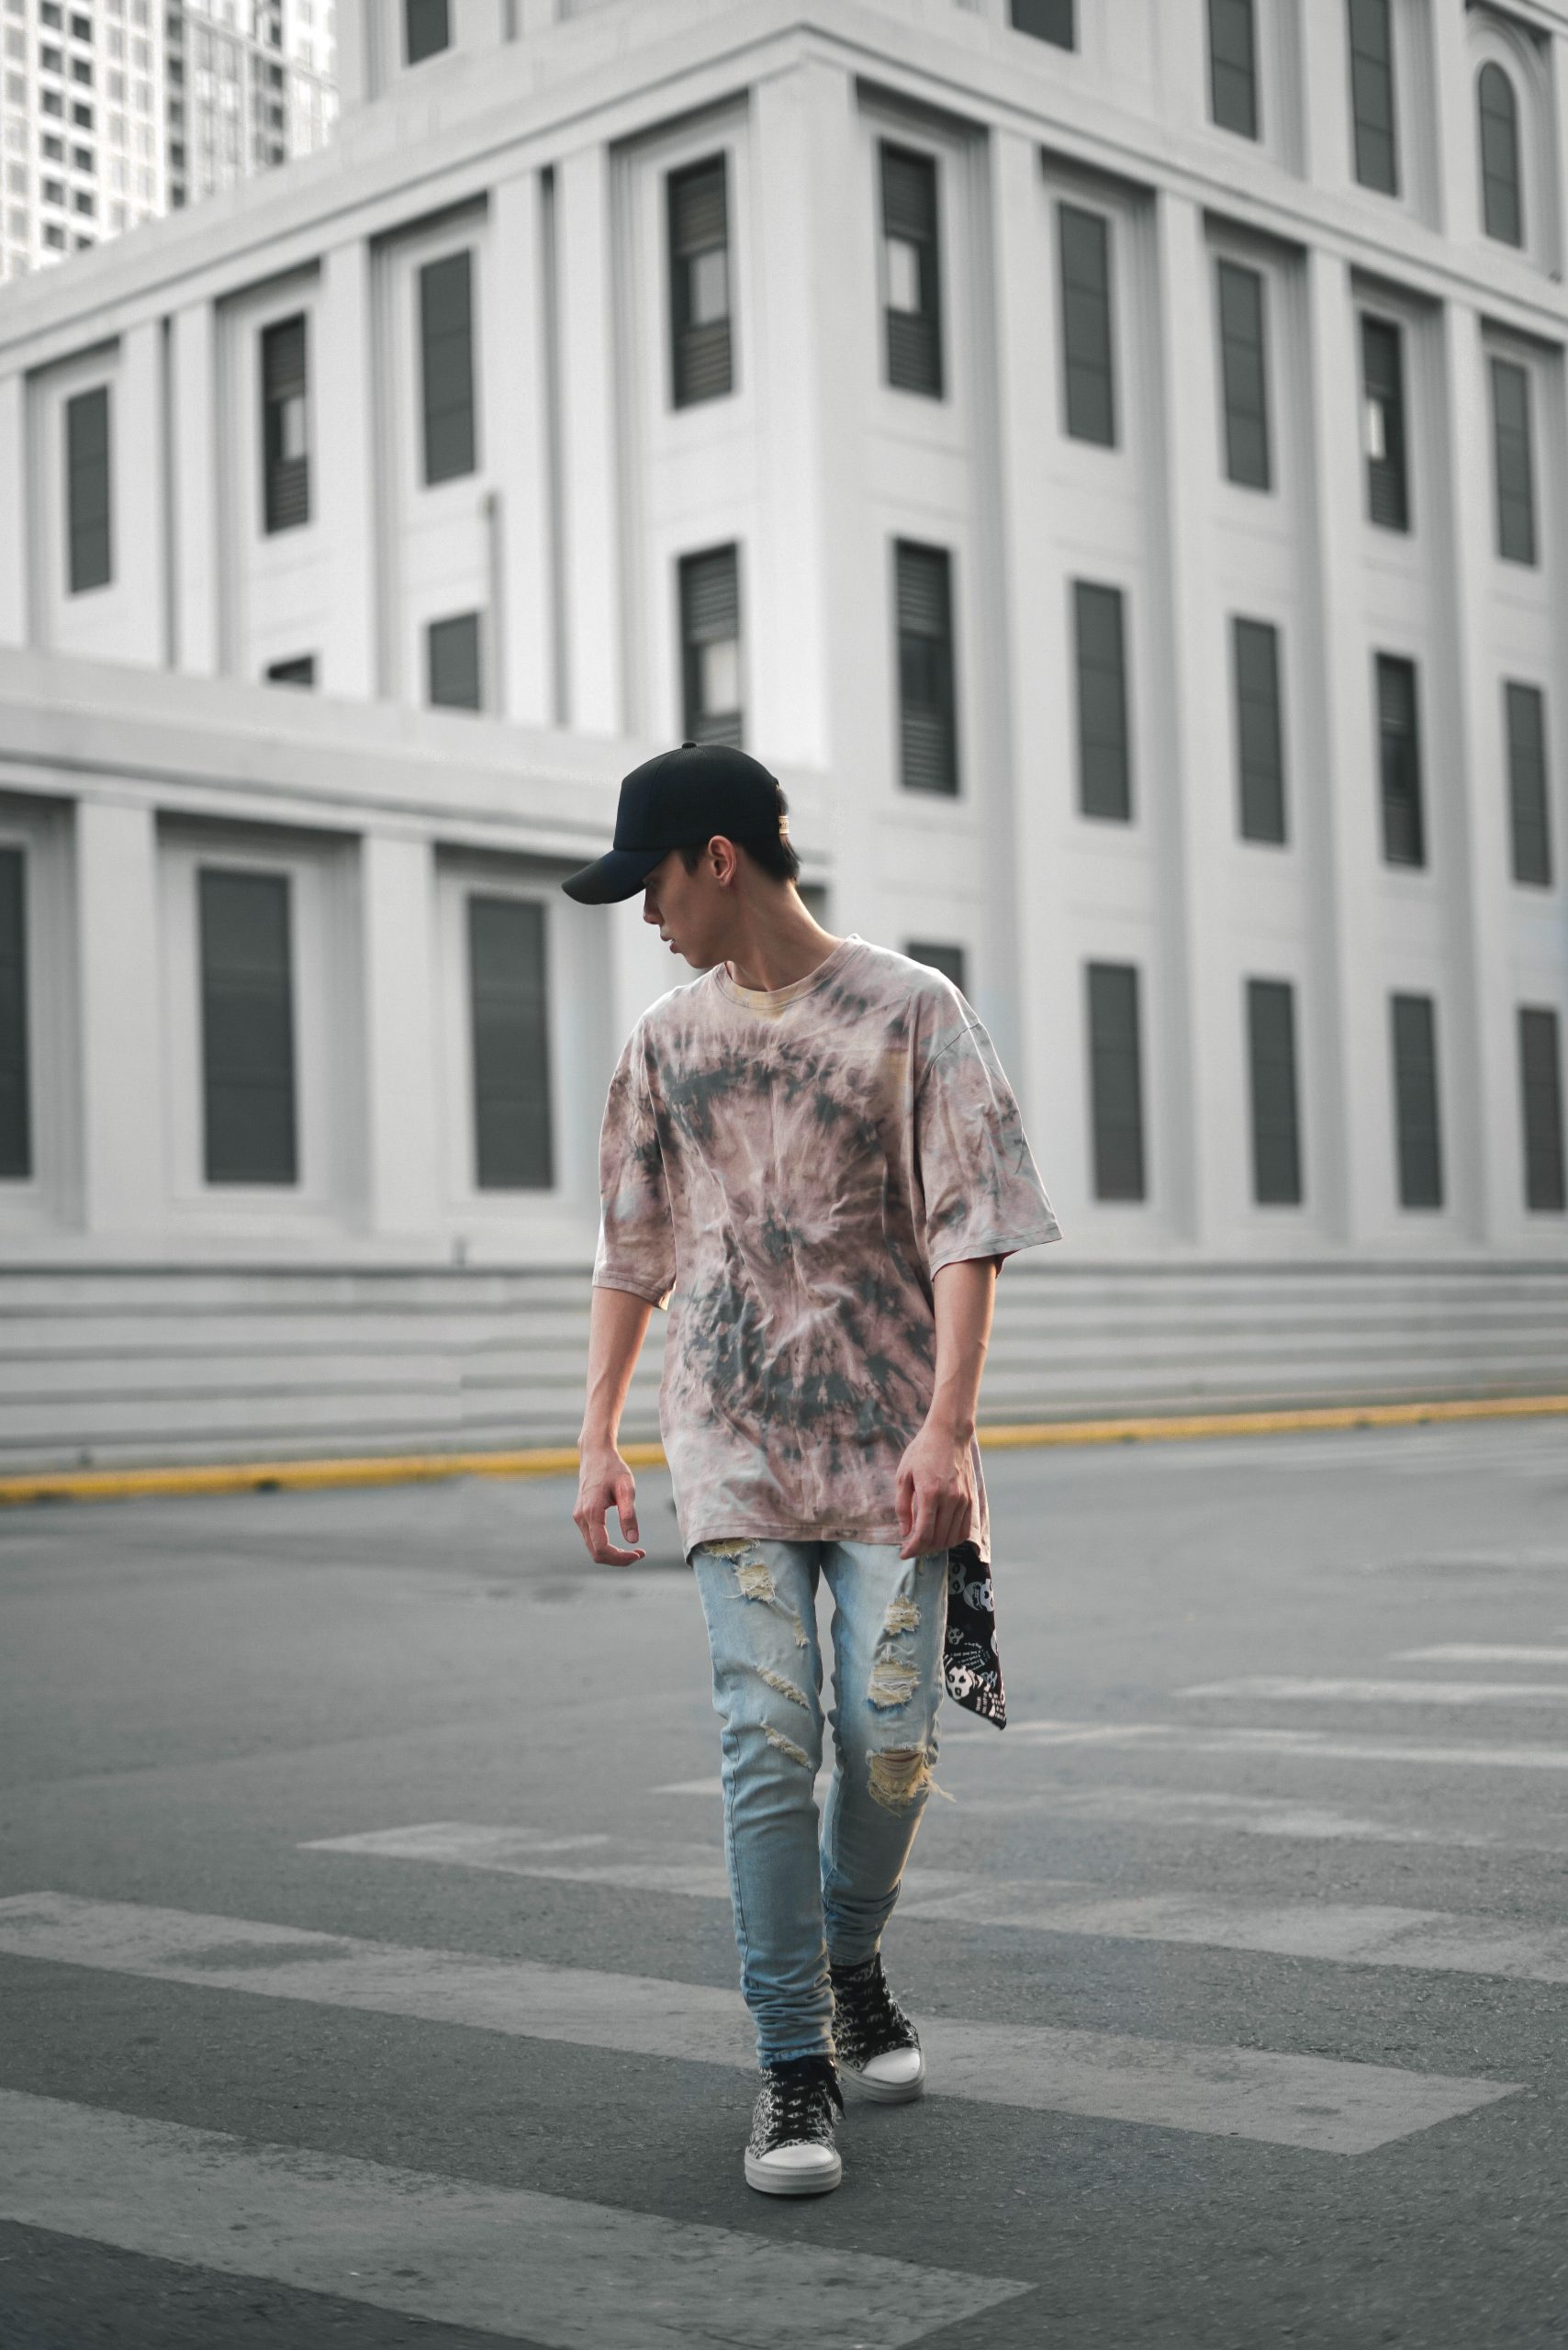 man walking across the pedestrian crossing wearing jeans, a cap and a brown-and-black tie dye shirt, casual fashion, casual outfits, casual clothes, casual wear